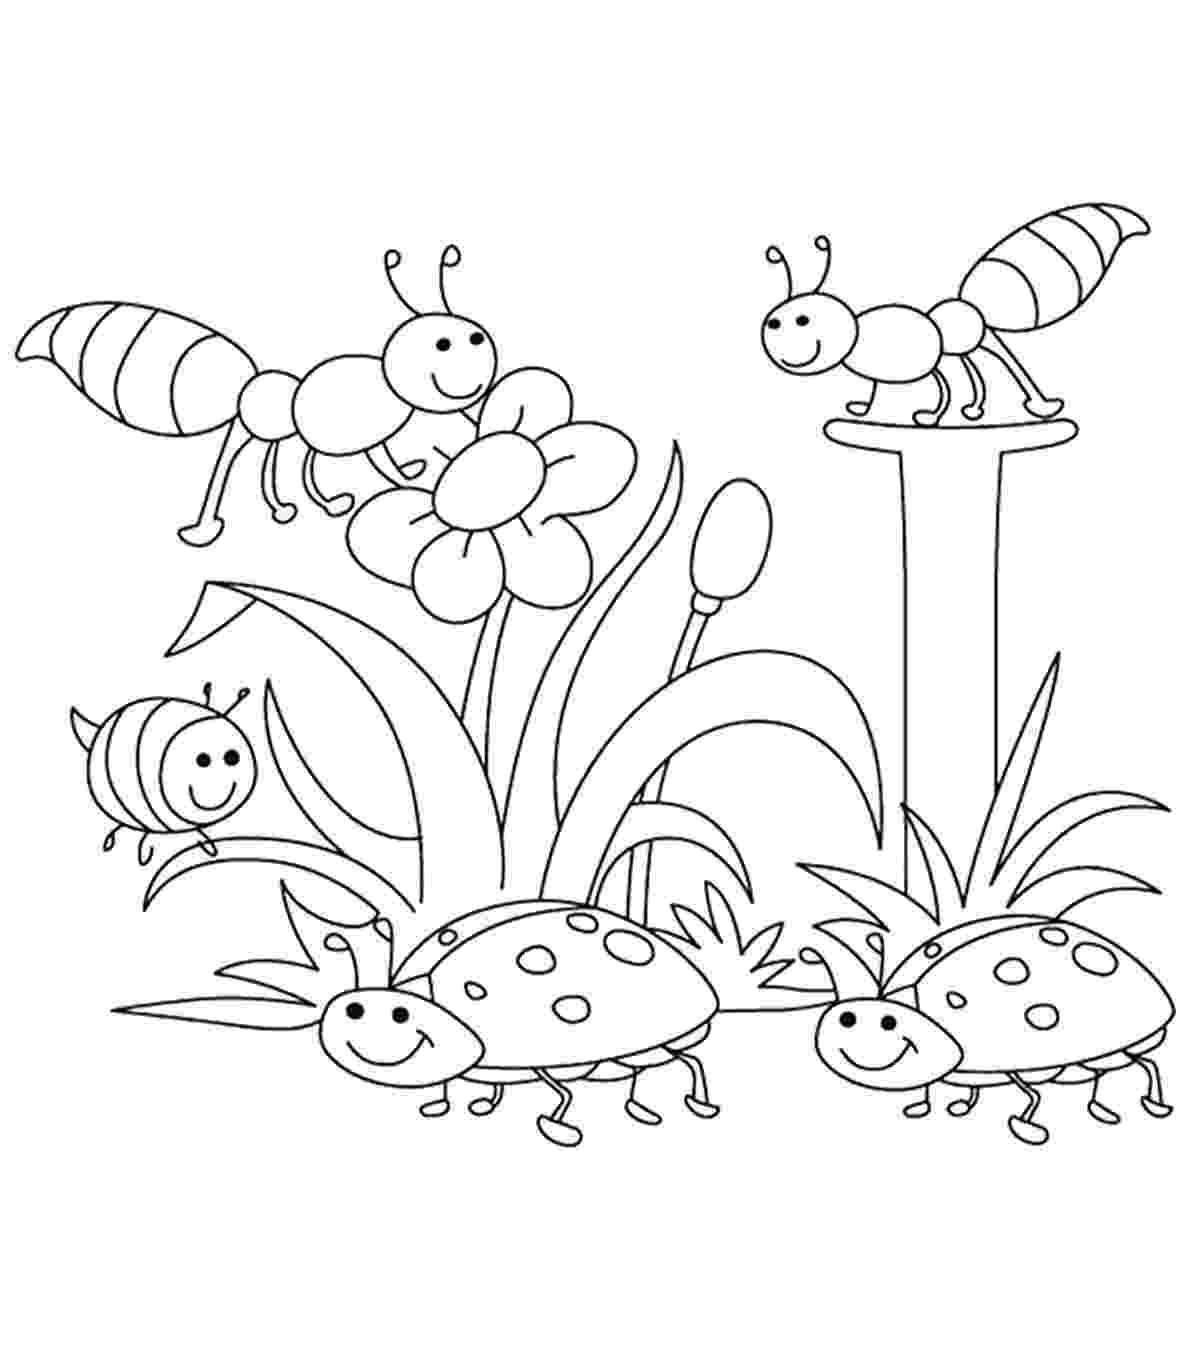 spring coloring sheets for toddlers spring coloring pages best coloring pages for kids toddlers spring for sheets coloring